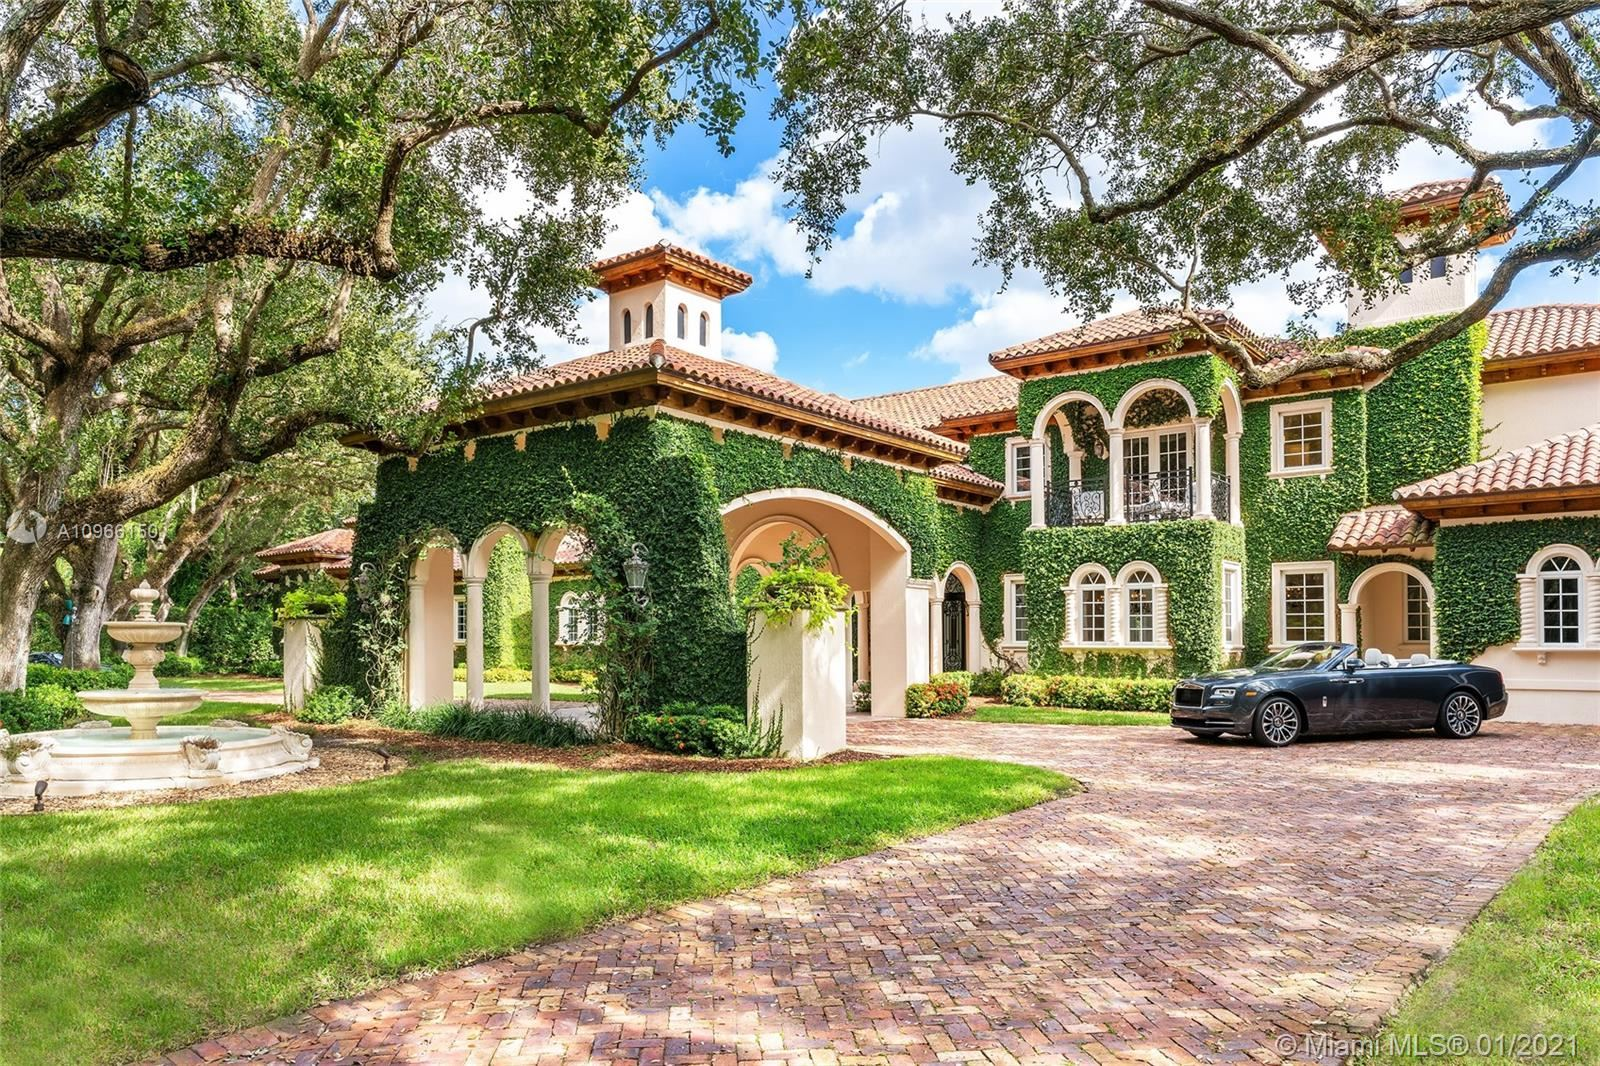 11501 Old Cutler Rd, Coral Gables, FL 33156 - #: A10966150